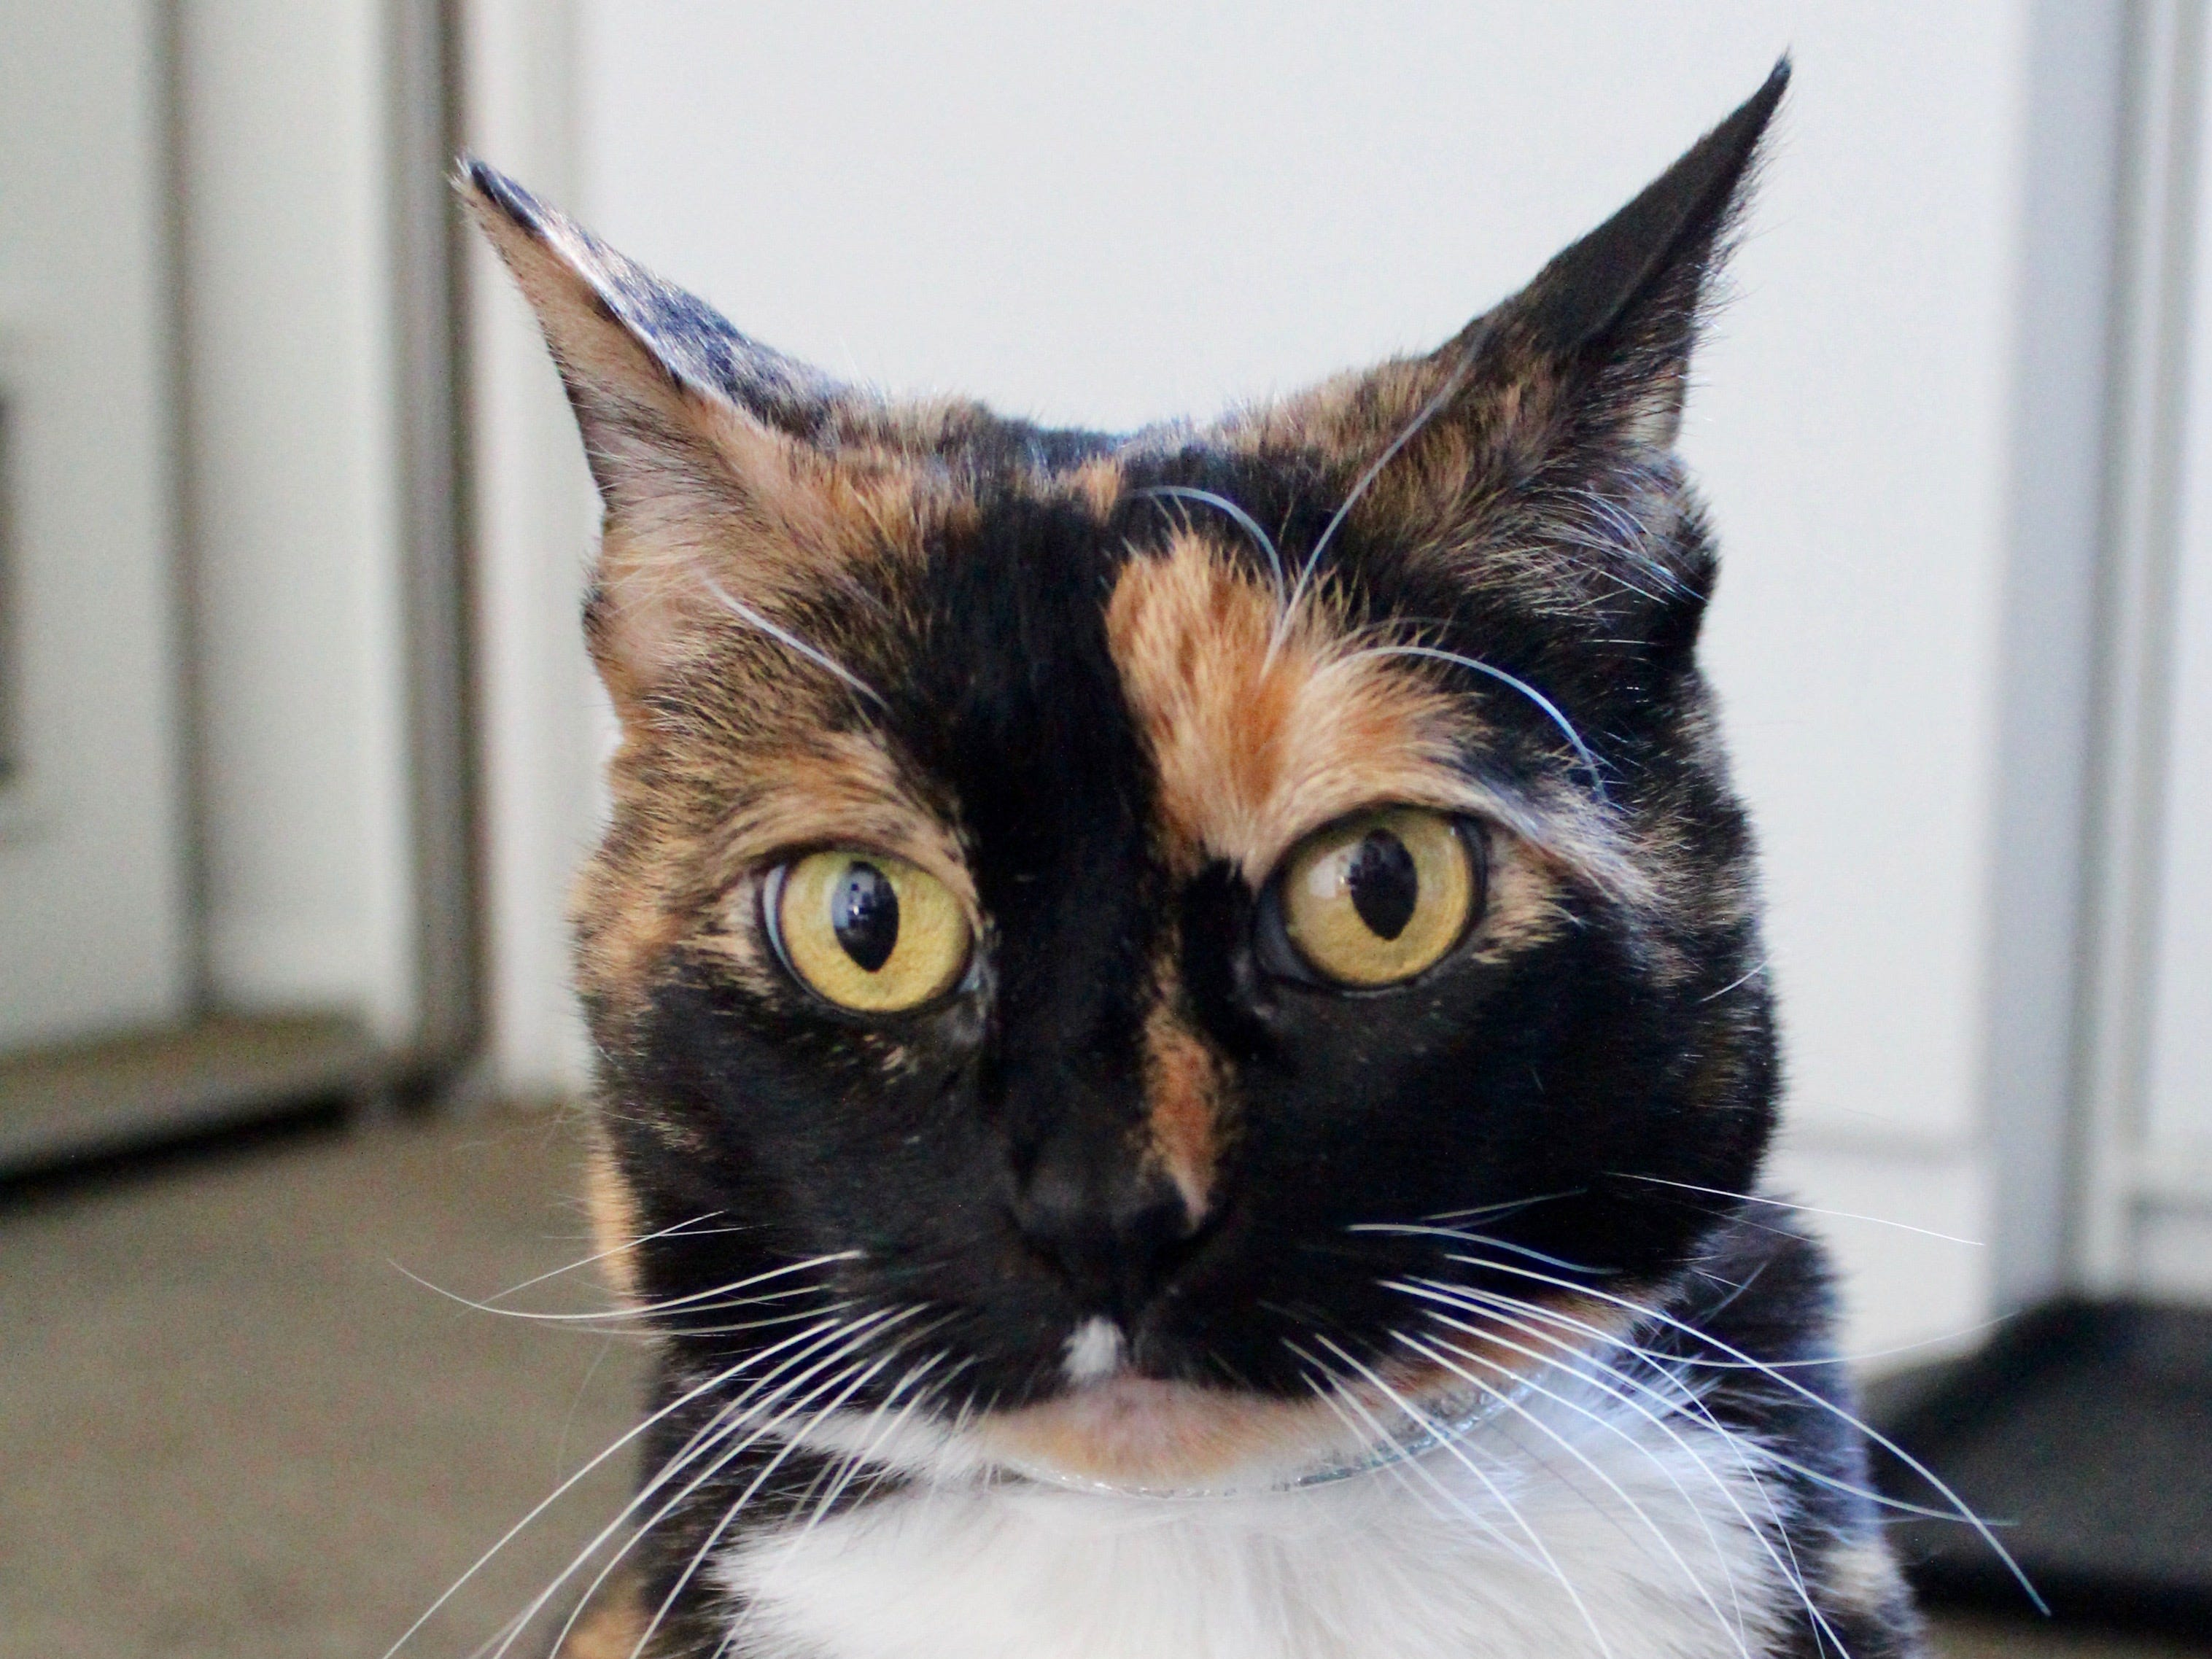 Bathilda is a 12-year-old calico cat looking for a cat-savvy person to live with. She bonds tightly to one person and is nothing but sweet to a person she considers her very best friend. Bathilda needs to be an indoor cat and would prefer to be your one and only animal. To find out more, call Willamette Humane Society at 503-585-5900 or visit www.whs4pets.org.